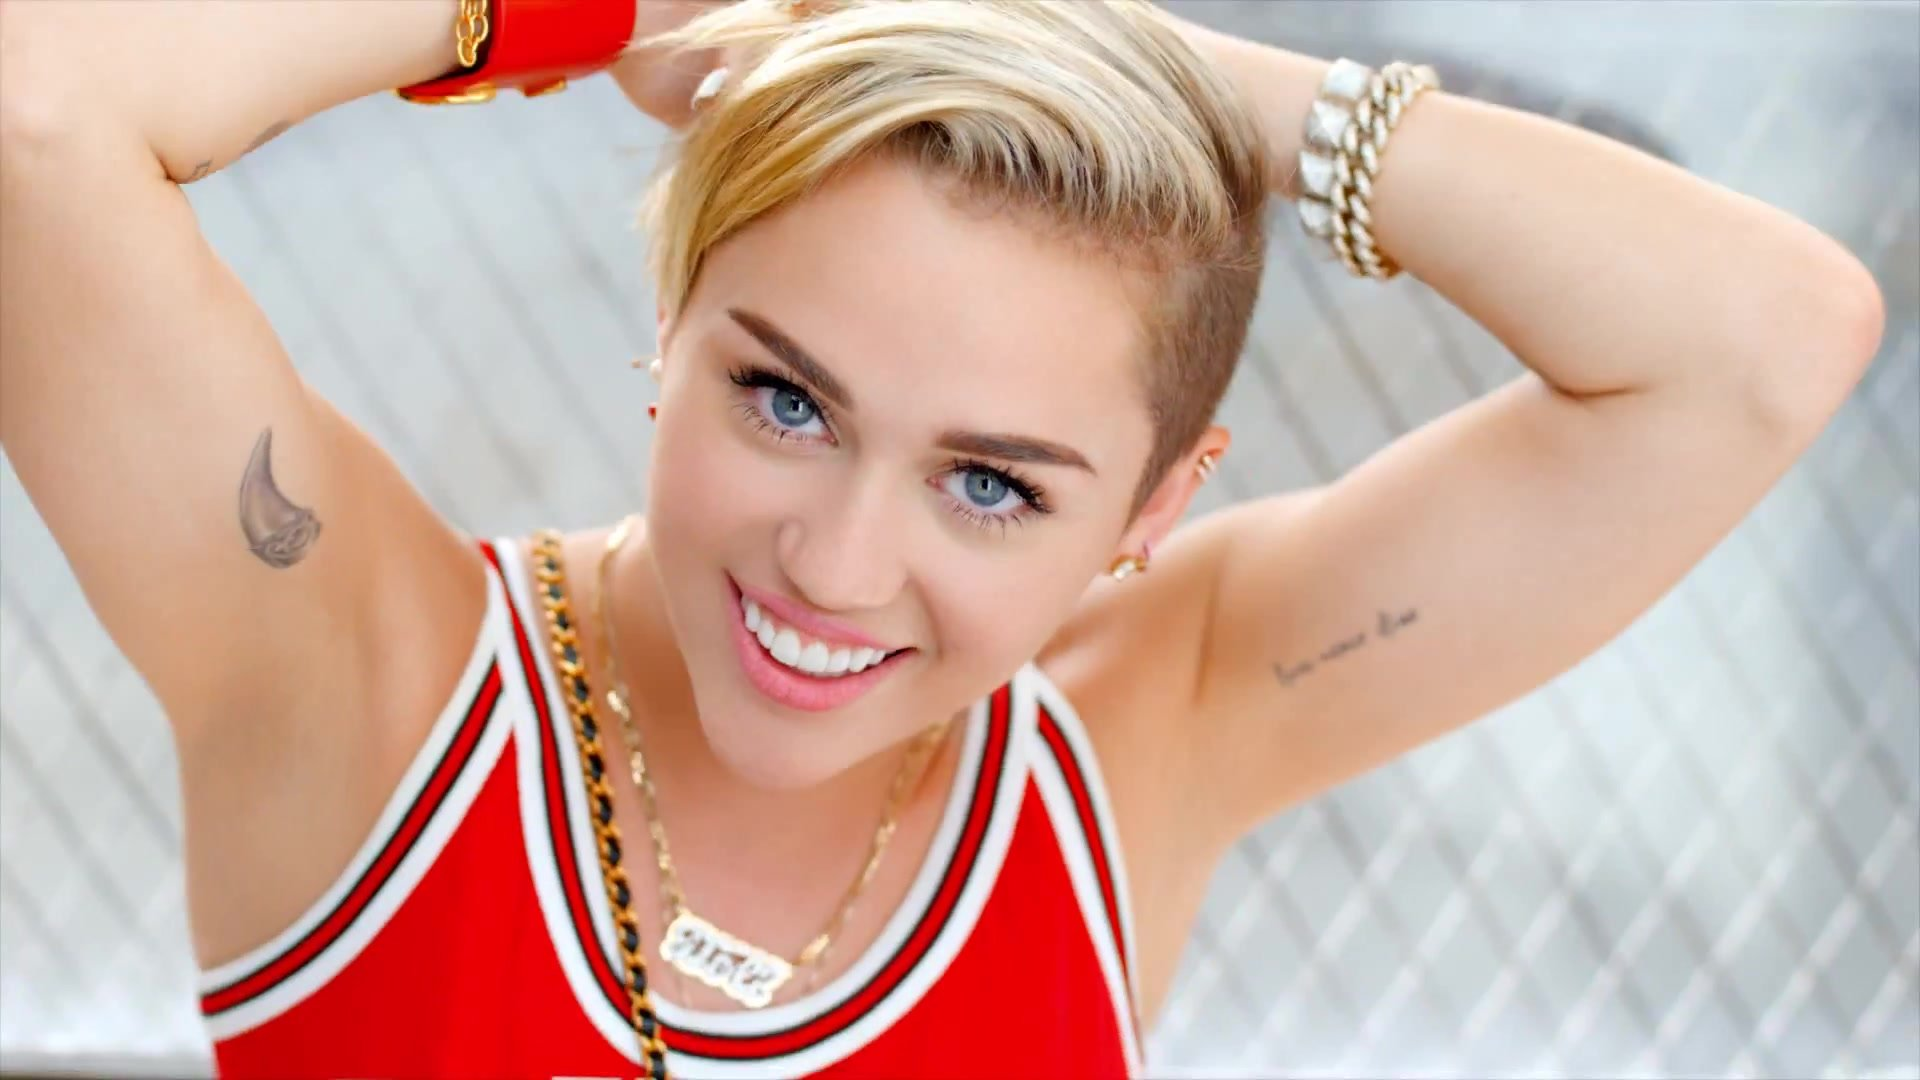 Miley Cyrus Photo Free Download Wallpapers 19